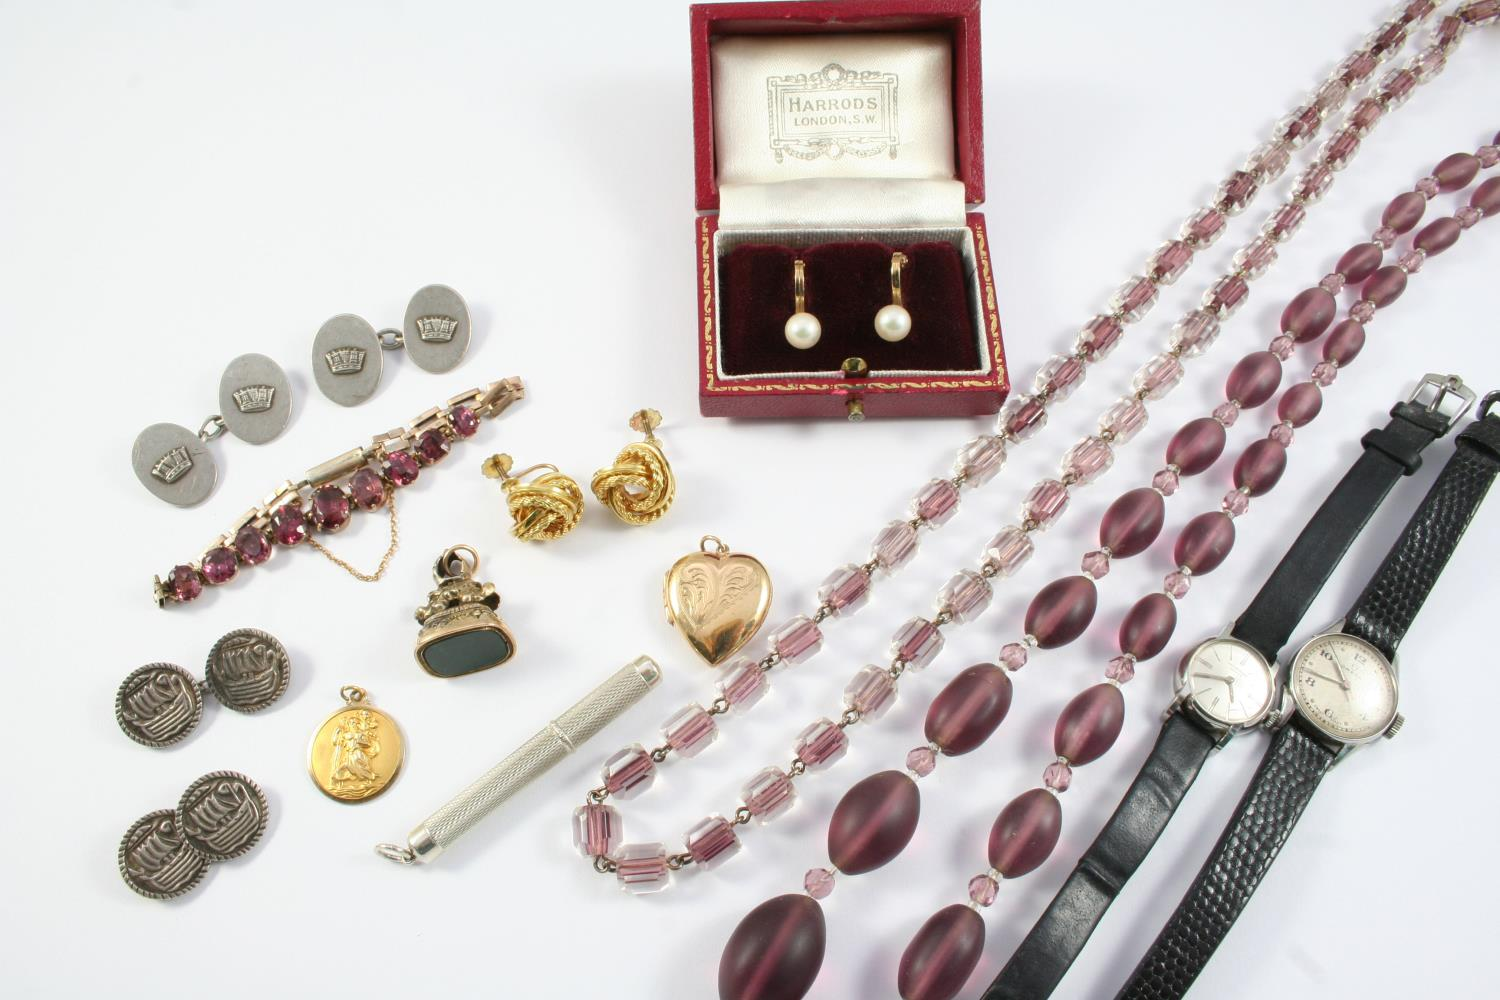 A QUANTITY OF JEWELLERY including a 9ct gold St. Christopher pendant, a pair of 9ct gold knot